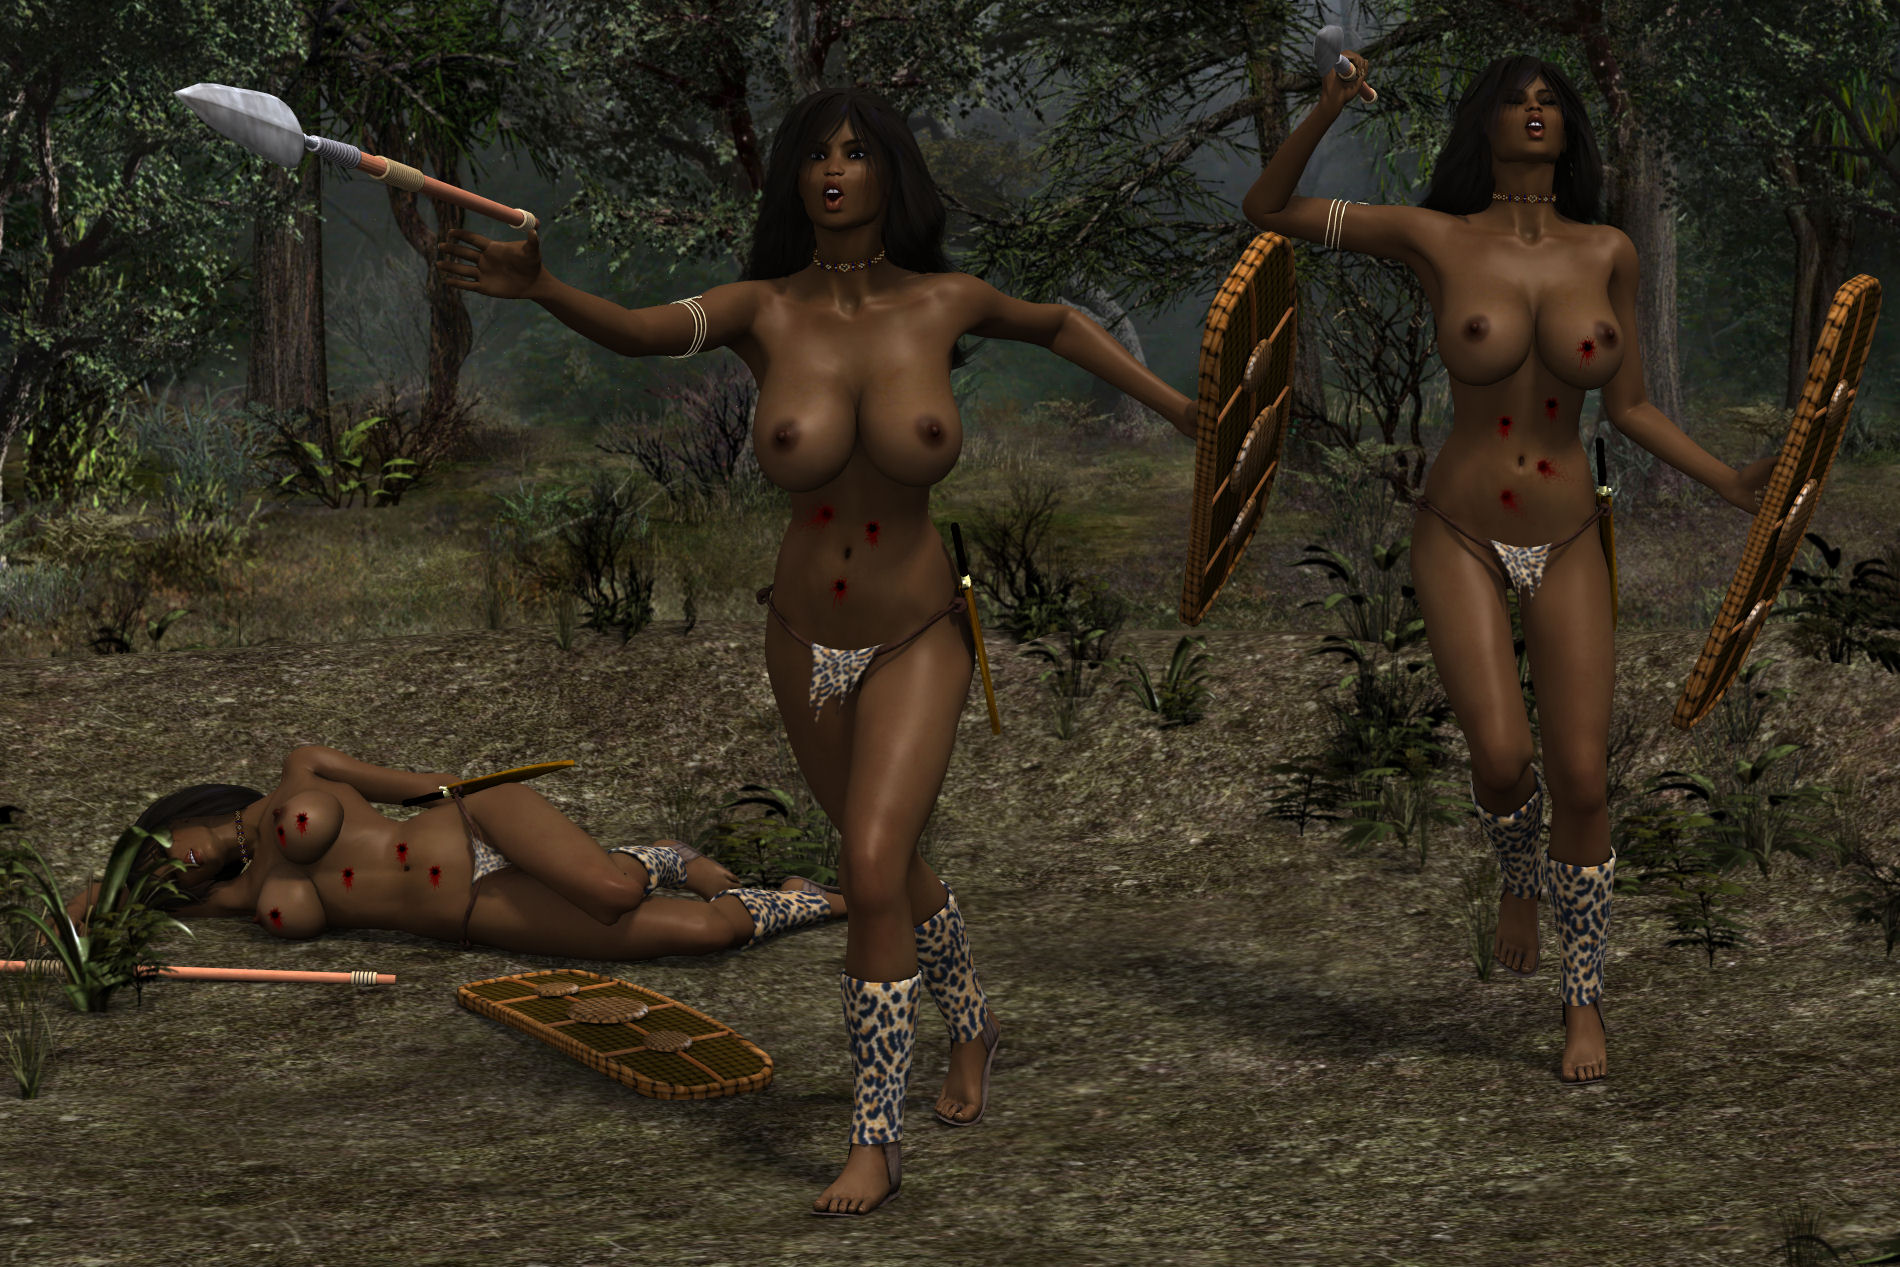 Naked action girl adrianna zarcova as a warrior goddess